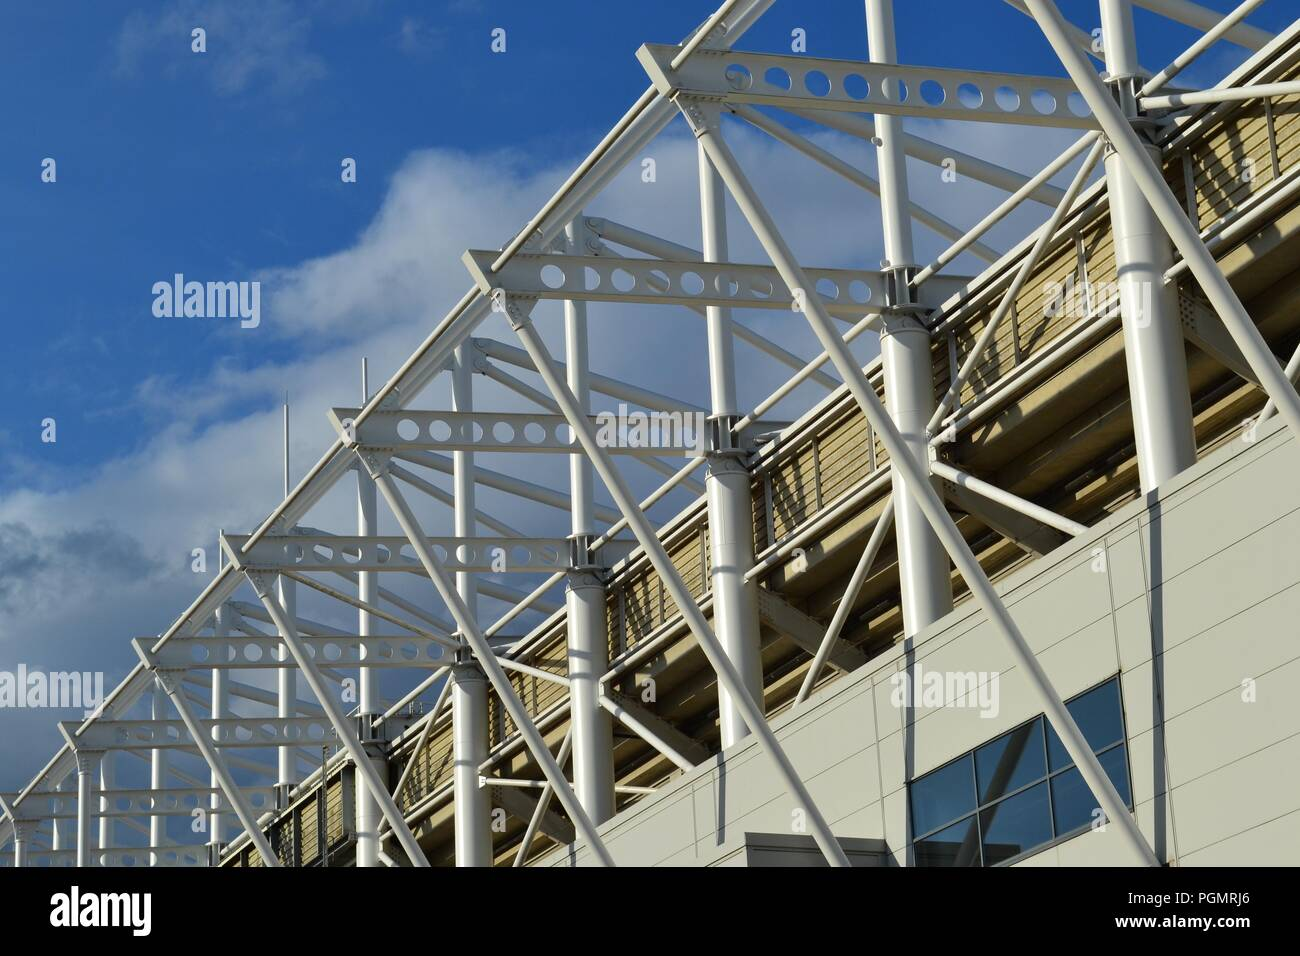 Stunning, naturally lit image of the Riverside Stadium, home of Middlesbrough Football Club. Stock Photo